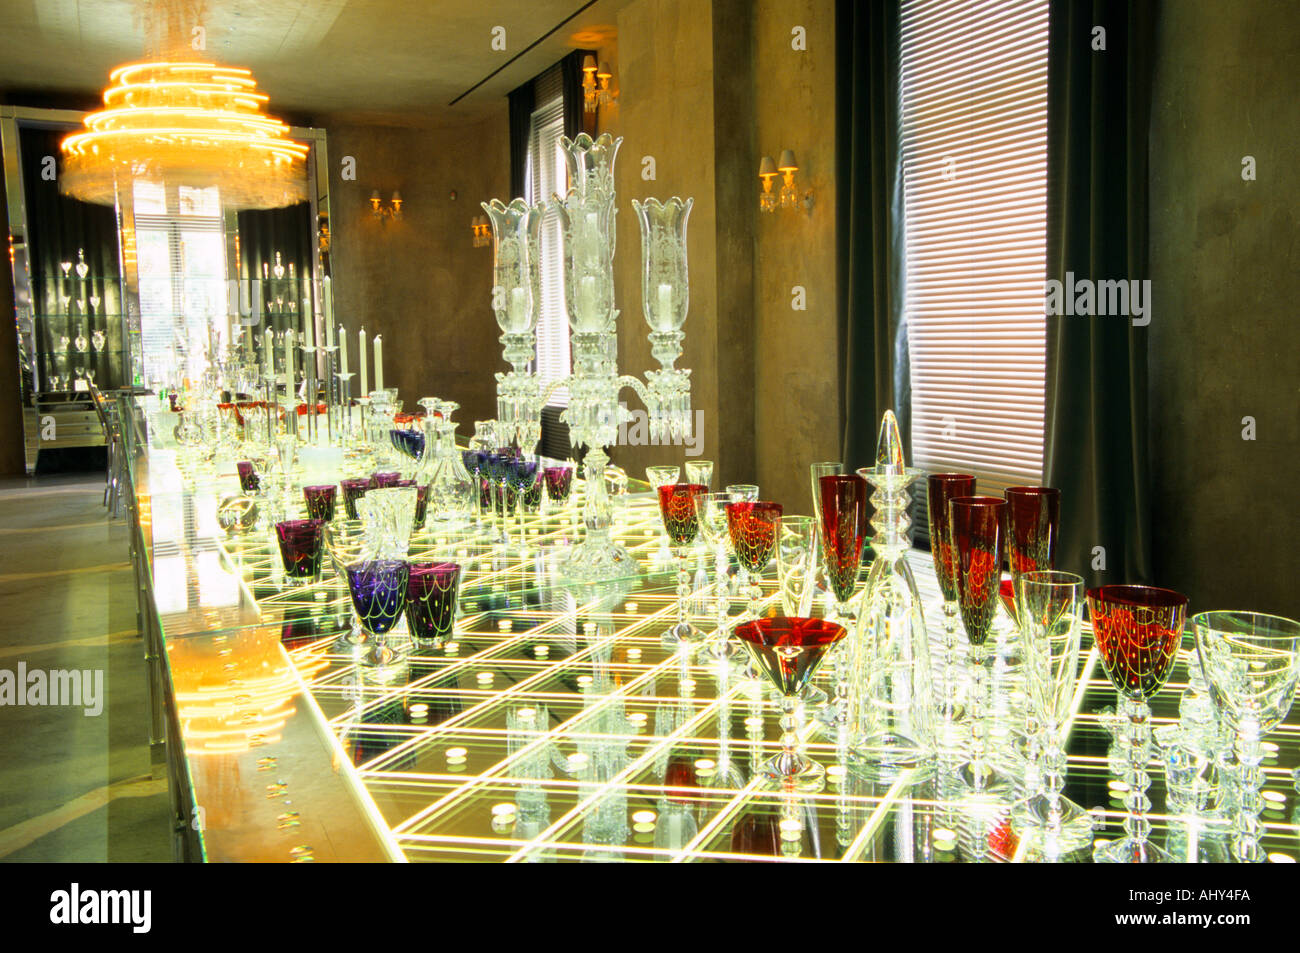 Crystal Chandeliers And Glasses Designed By Philippe Starck The Baccarat With Its Revolving Chandelier